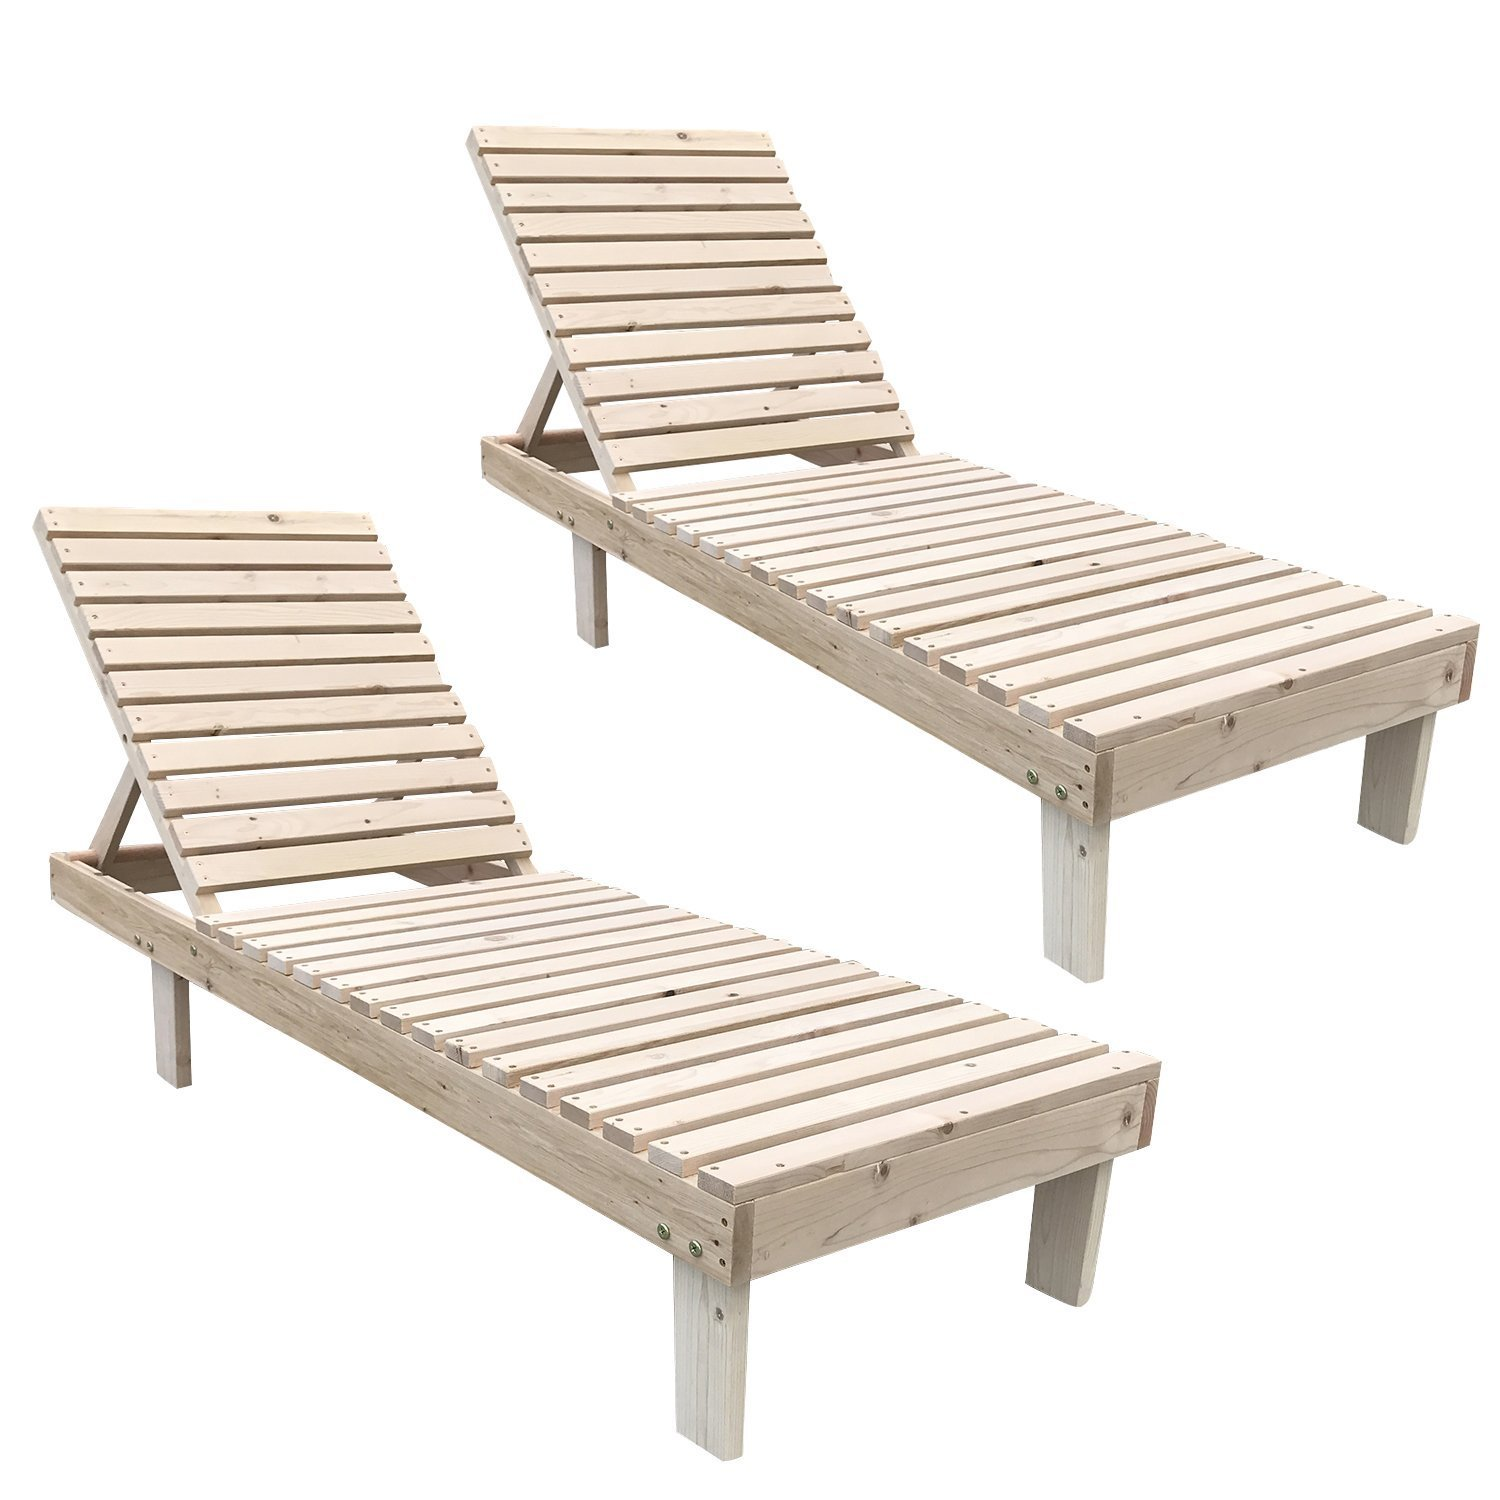 Amazoncom Uhom Set Of 2 Wooden Adjustable Chaise Lounge Chair